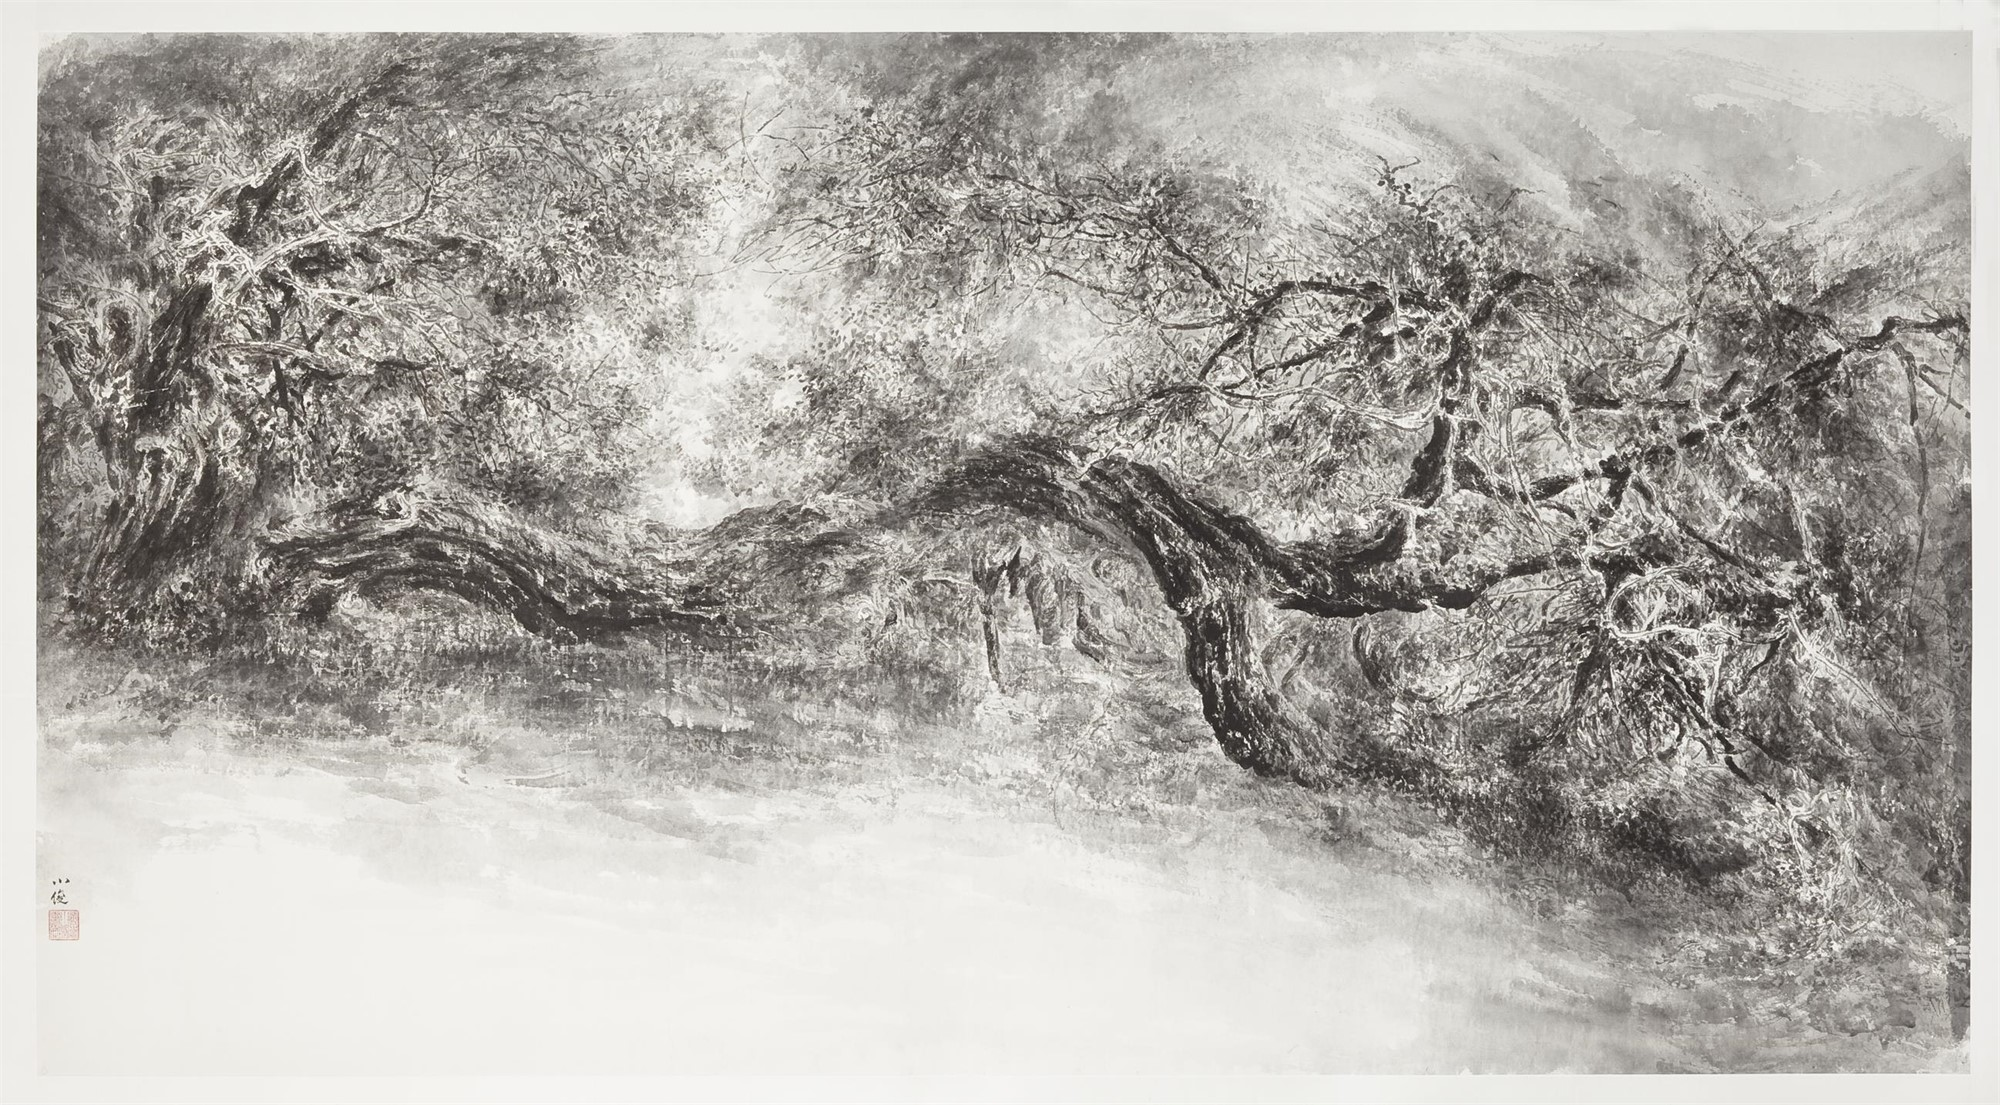 TREE STUDY NO. 3 by Xiaojun Zeng